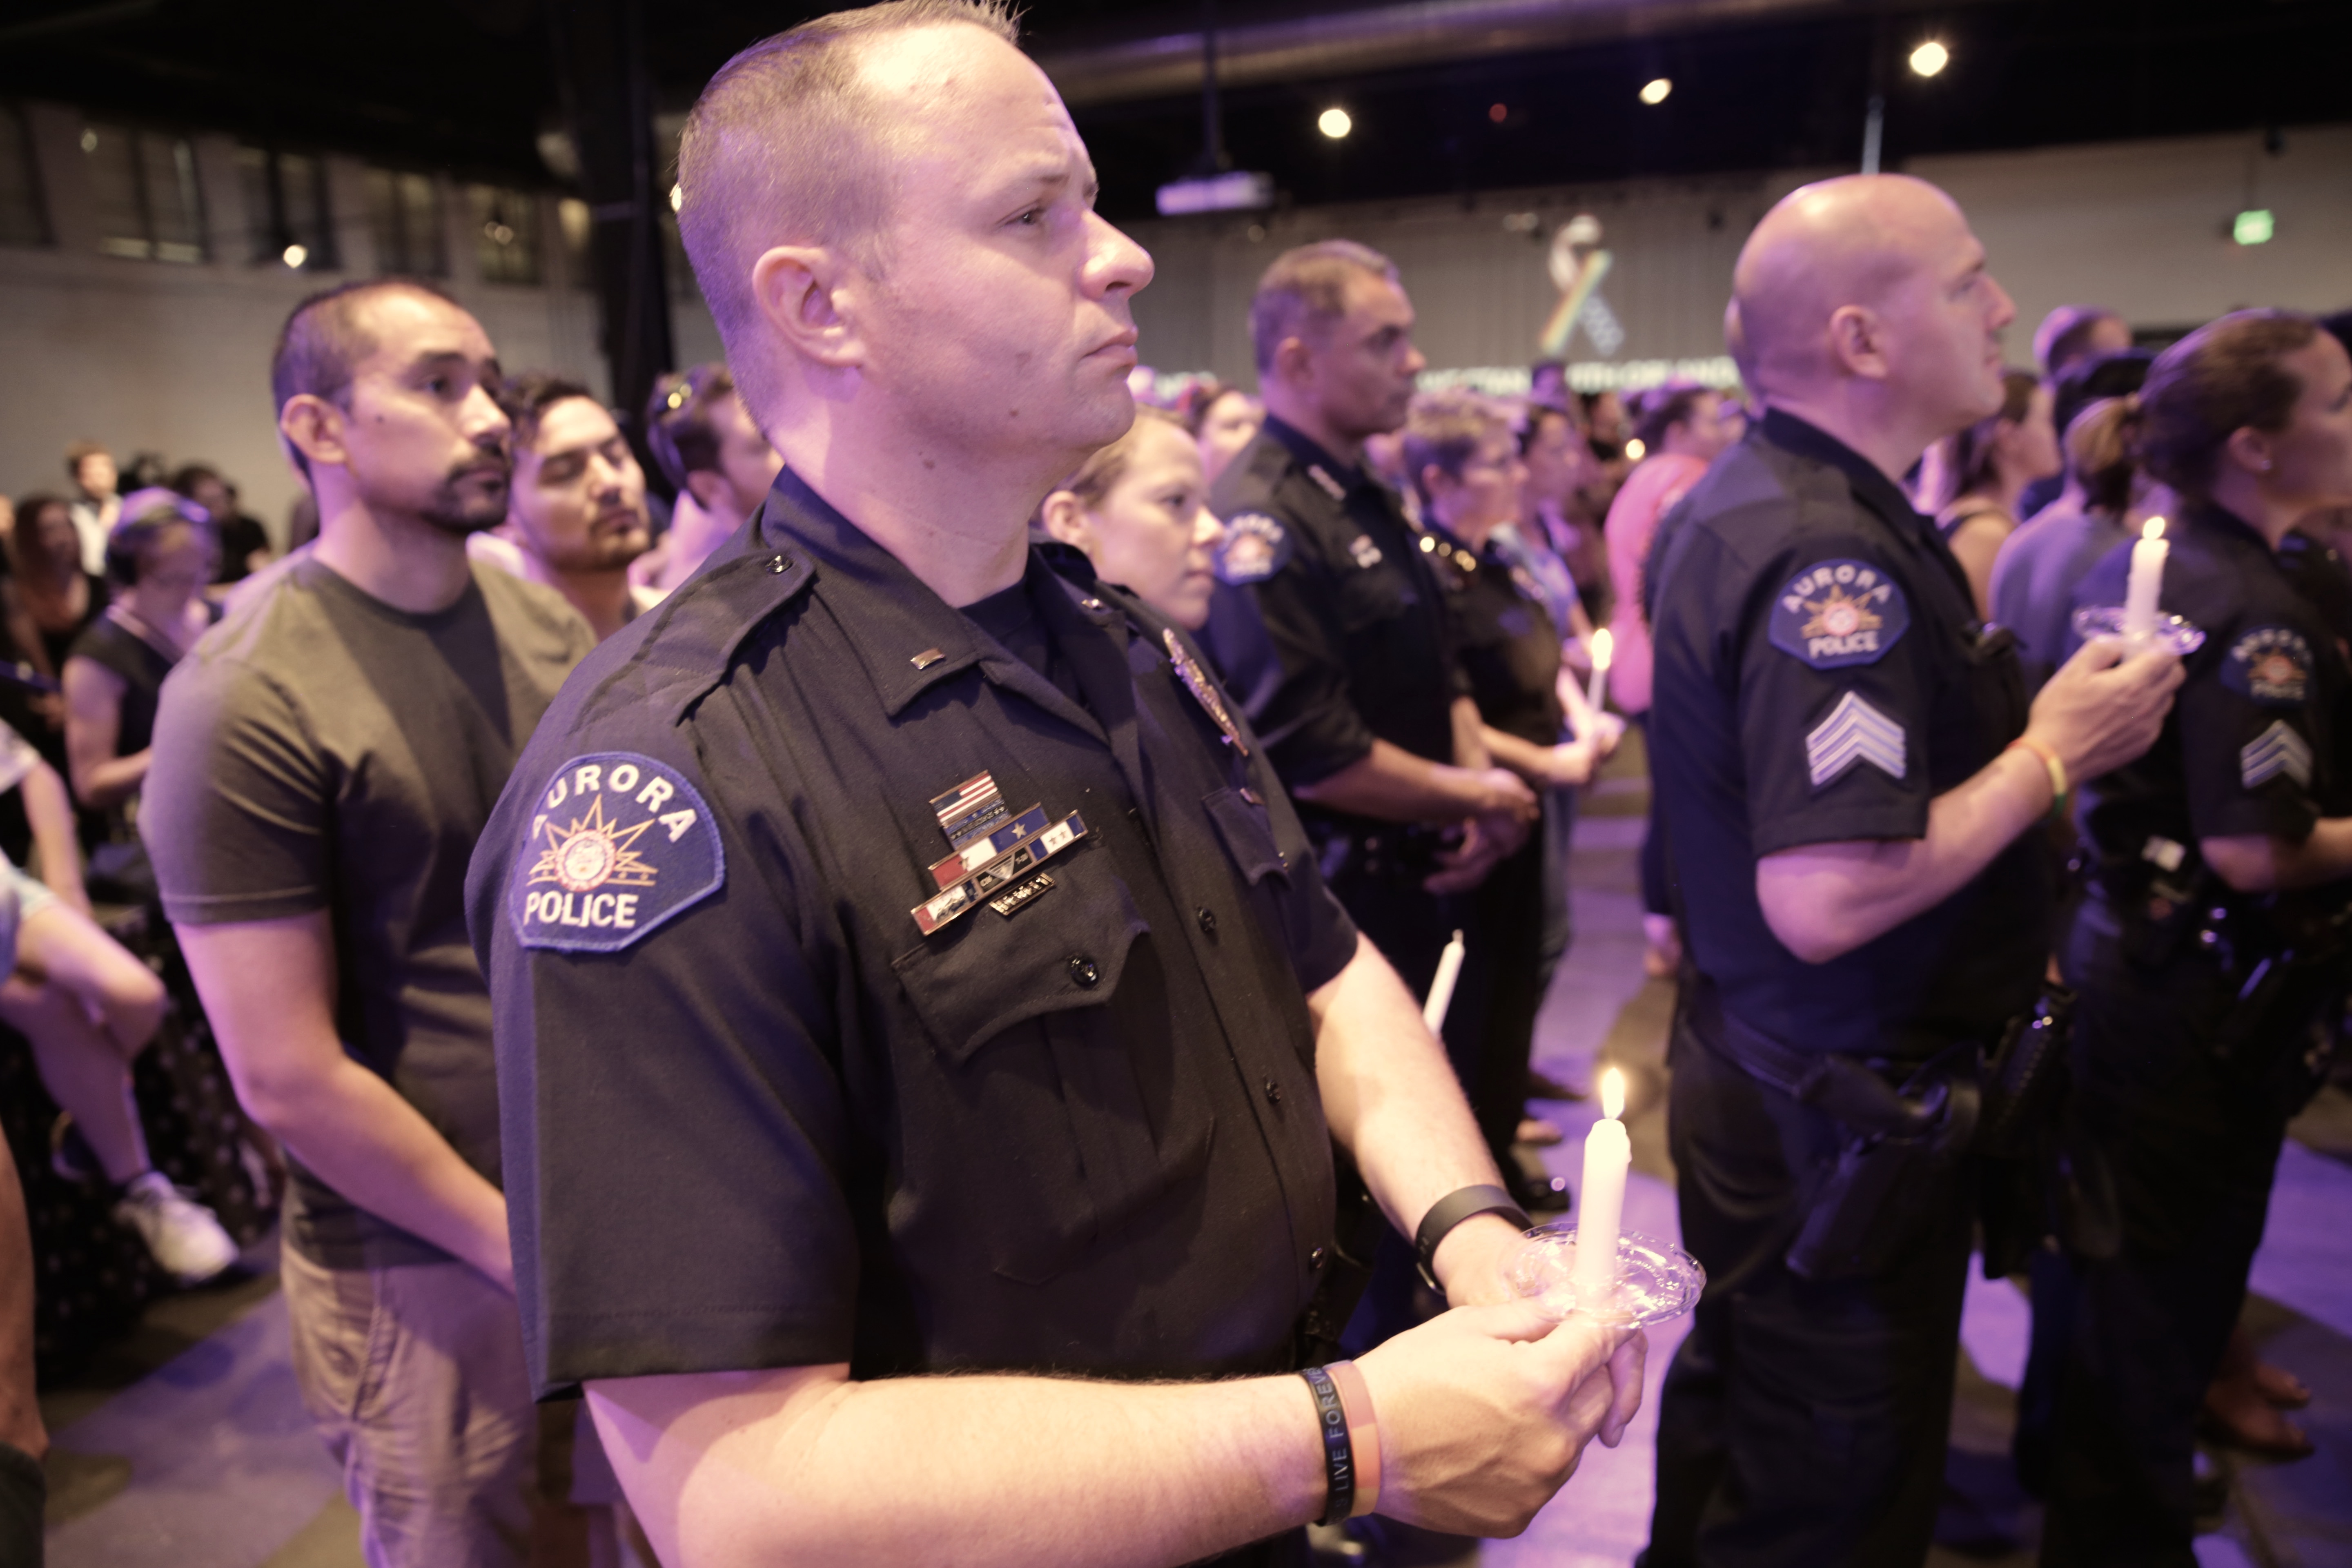 <p>Aurora Police Department officers hold candles Sunday evening at Tracks nightclub in Denver during avigil for victims of the mass shooting in Orlando.</p>